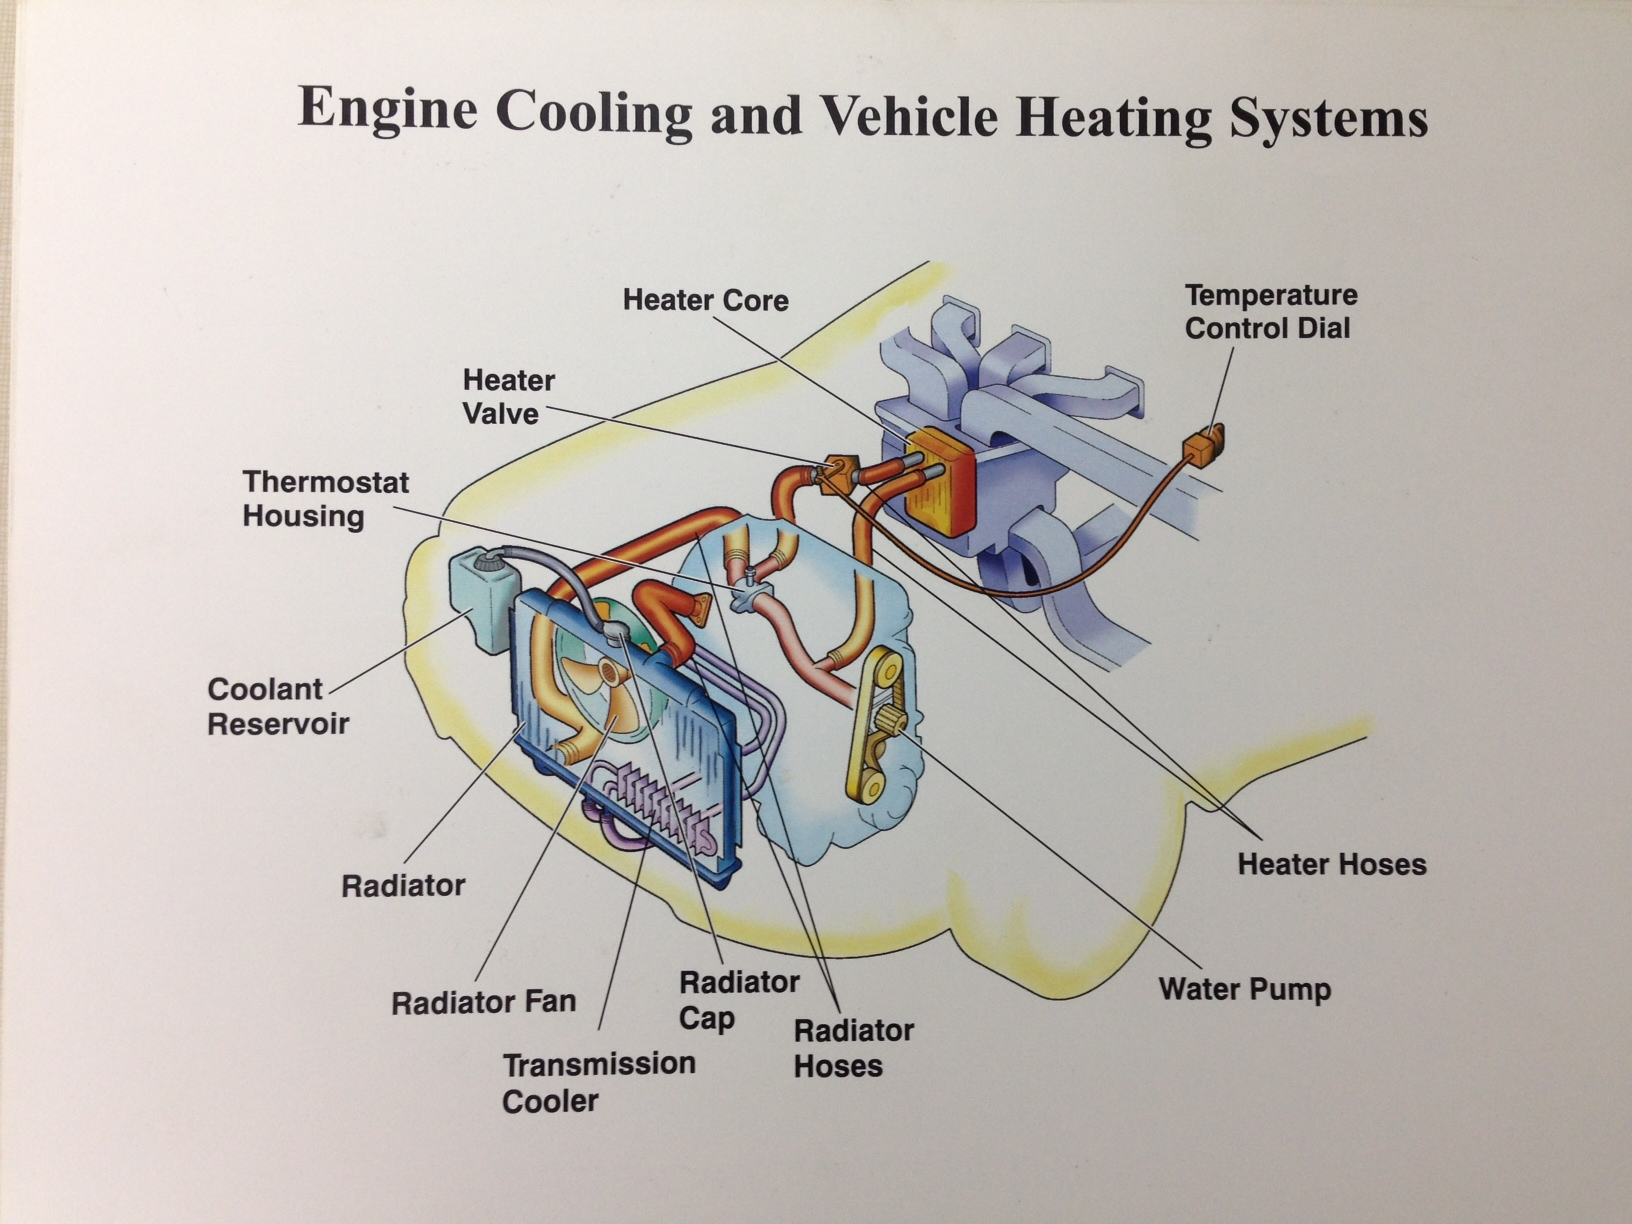 hight resolution of four symptoms of a sick cooling system nassau motor company engine coolant reservoir system diagram